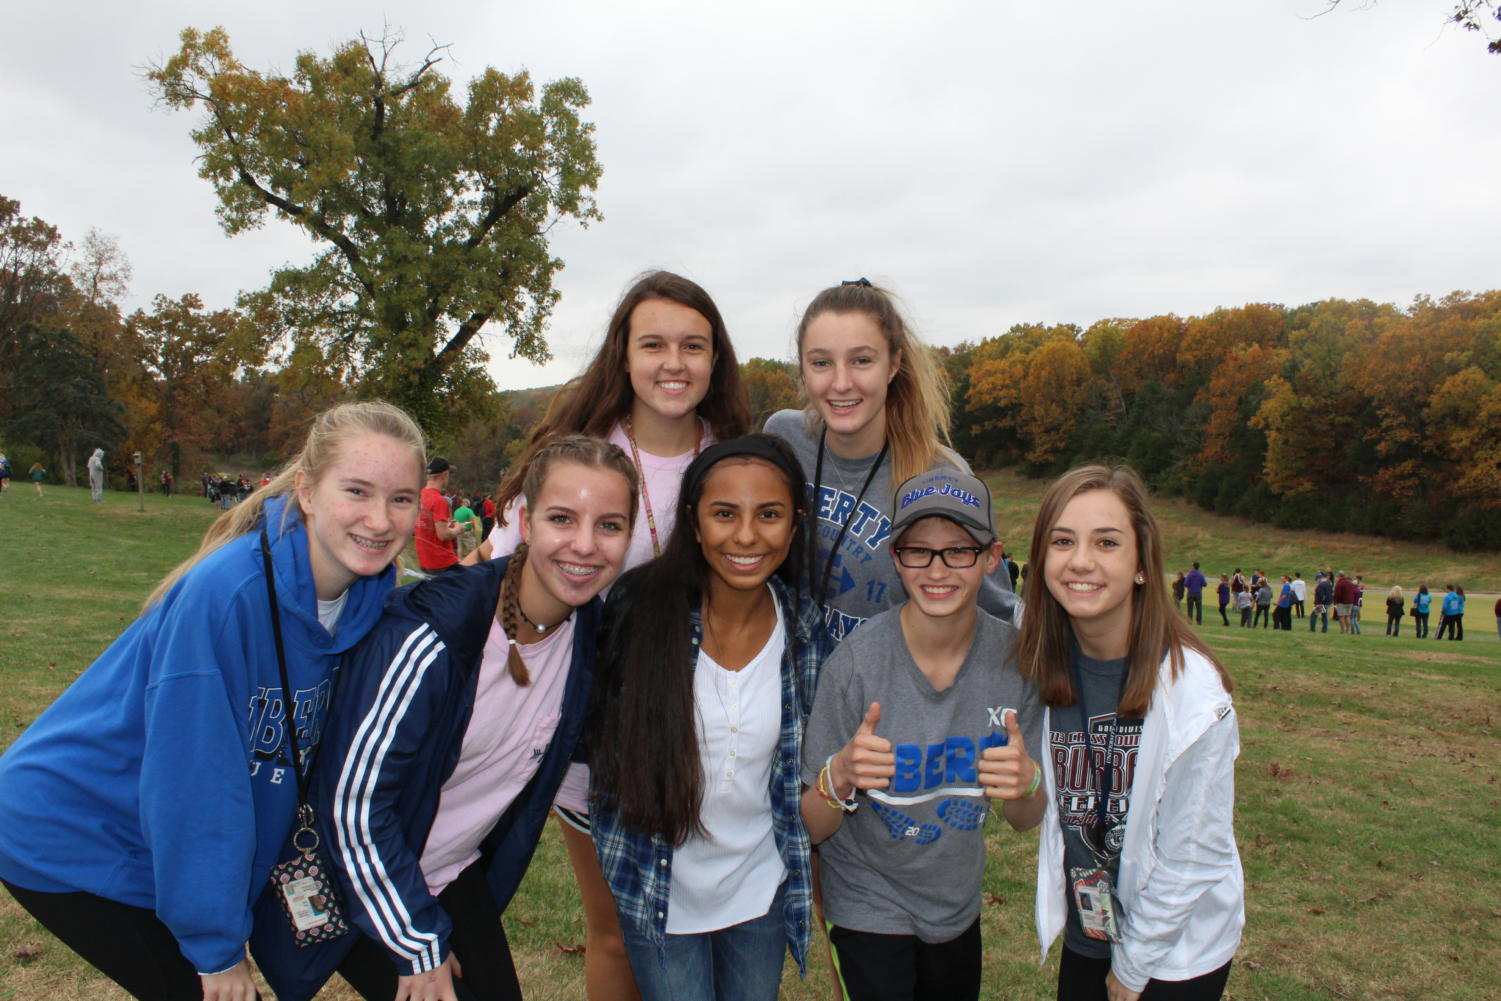 Members of the cross country team gather for a photo at a late season meet. Photo by Alyssa Griffith.